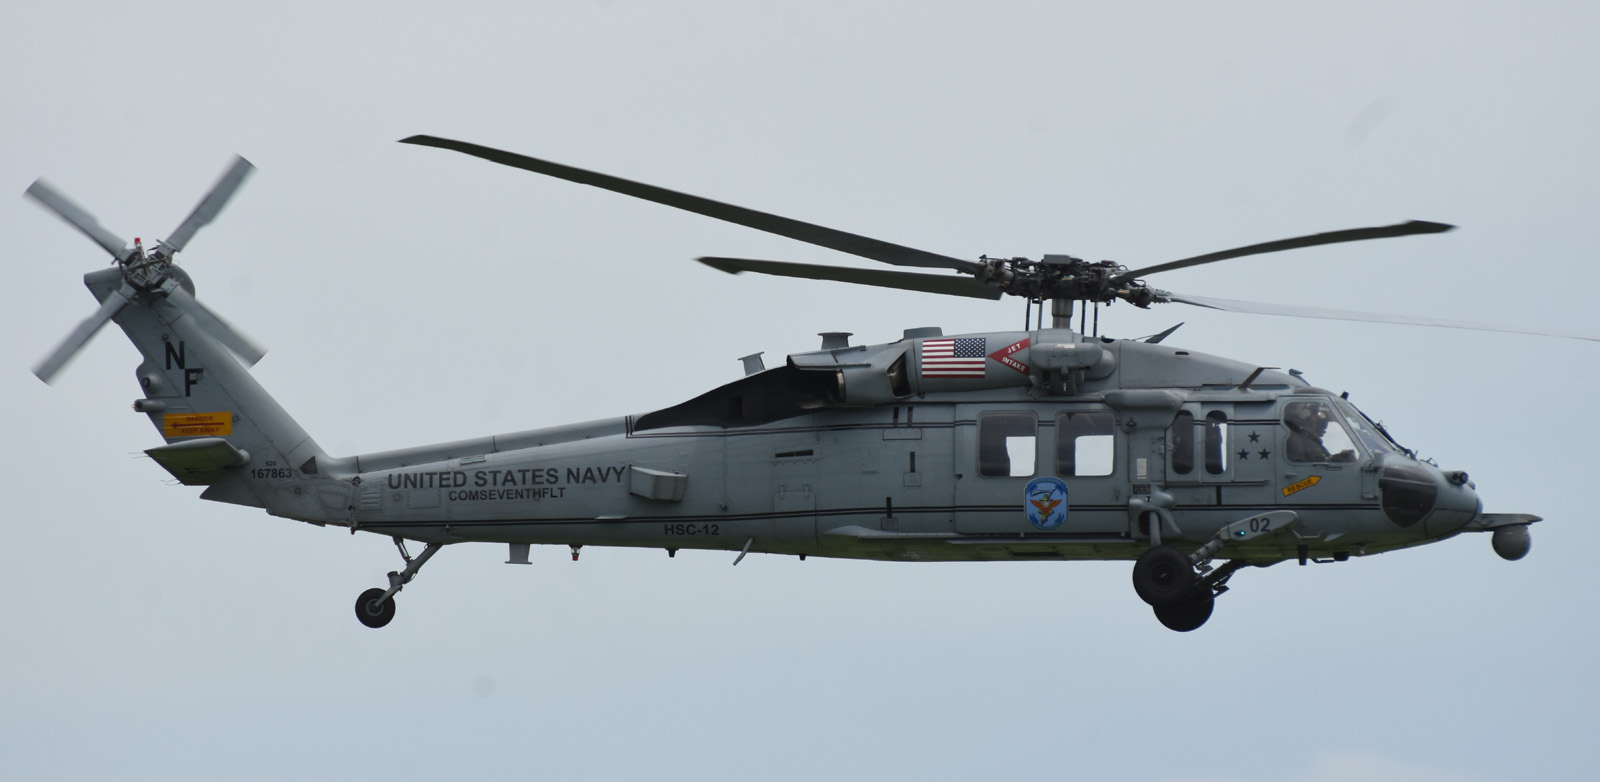 Mh60s180816g946